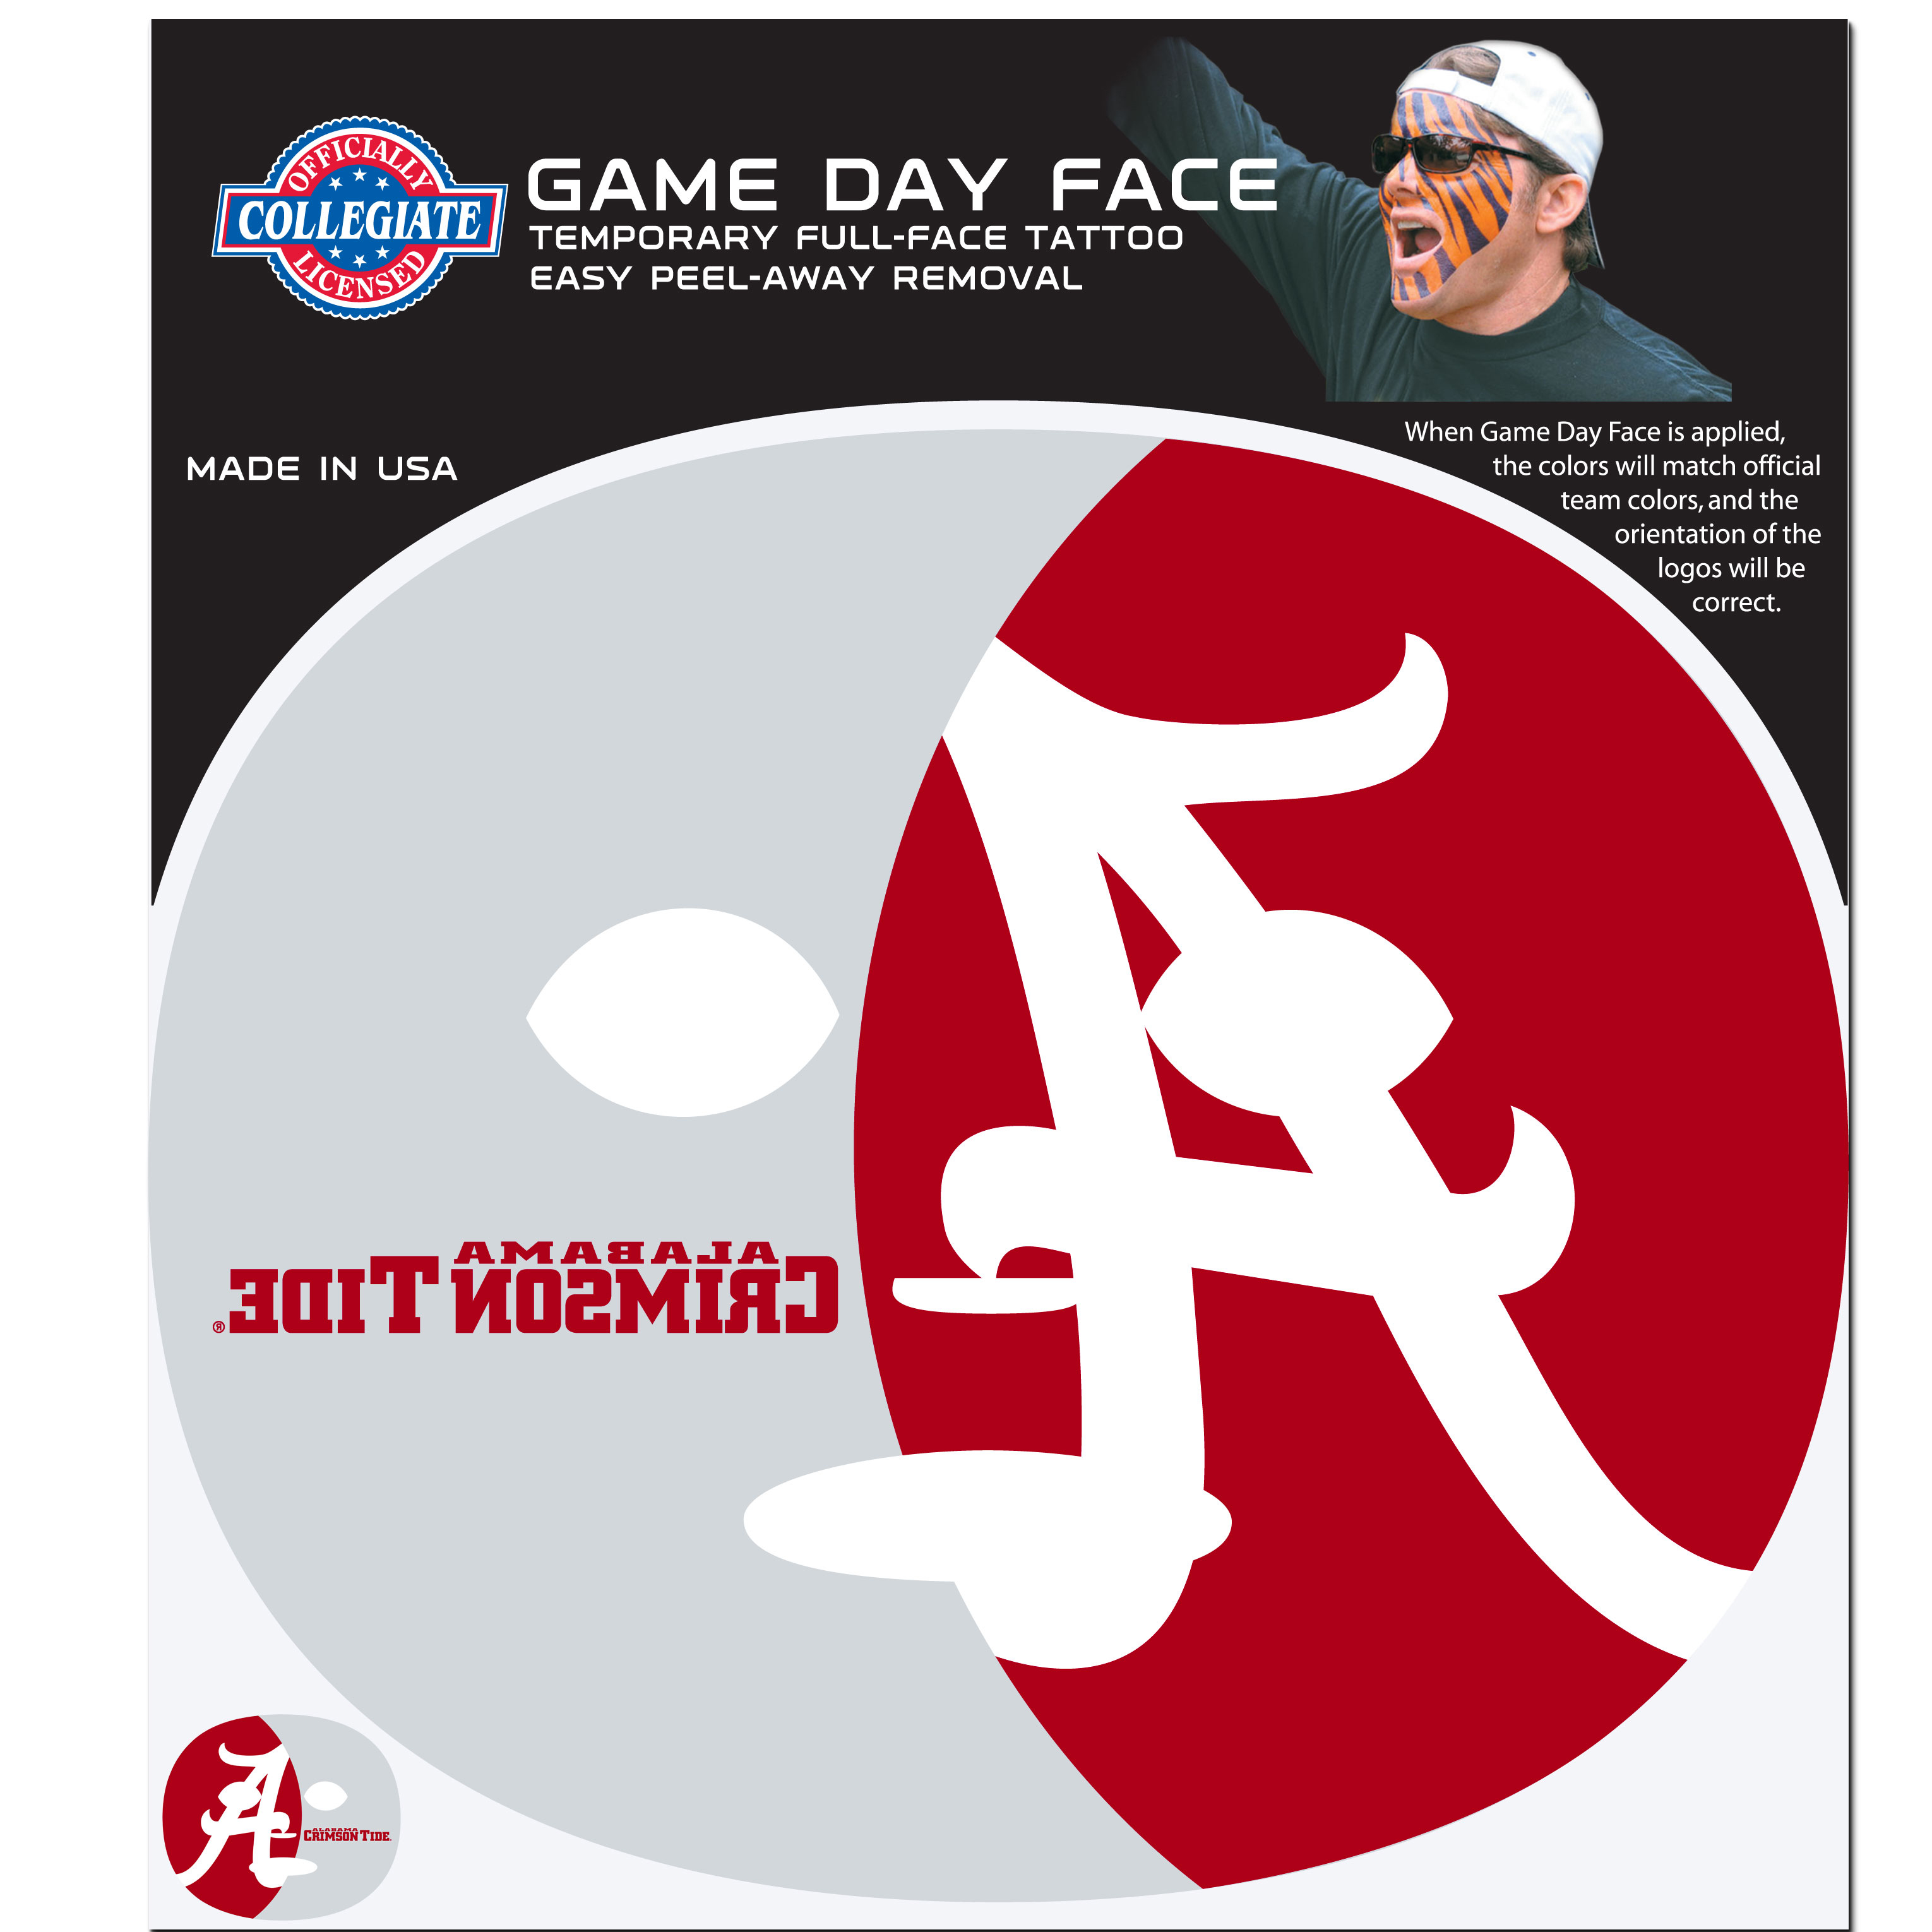 Alabama Crimson Tide Set of 8 Game Day Faces - No better way to show your team pride than by painting your face. Siskiyou's Game Day Face Temporary Tattoo isn't your typical face paint. It is a water based application that doesn't smudge, smear or sweat off while you're wearing it and easily peels off after you're done celebrating your team's big Win! The temporary tattoo is large enough to trim down to fit your face. Our Game Day Face Temporary Tattoo's are fun for fans of all ages. You may have seen our product before, these are the same Temporary Face Tattoos as pitched on ABC's Shark Tank.